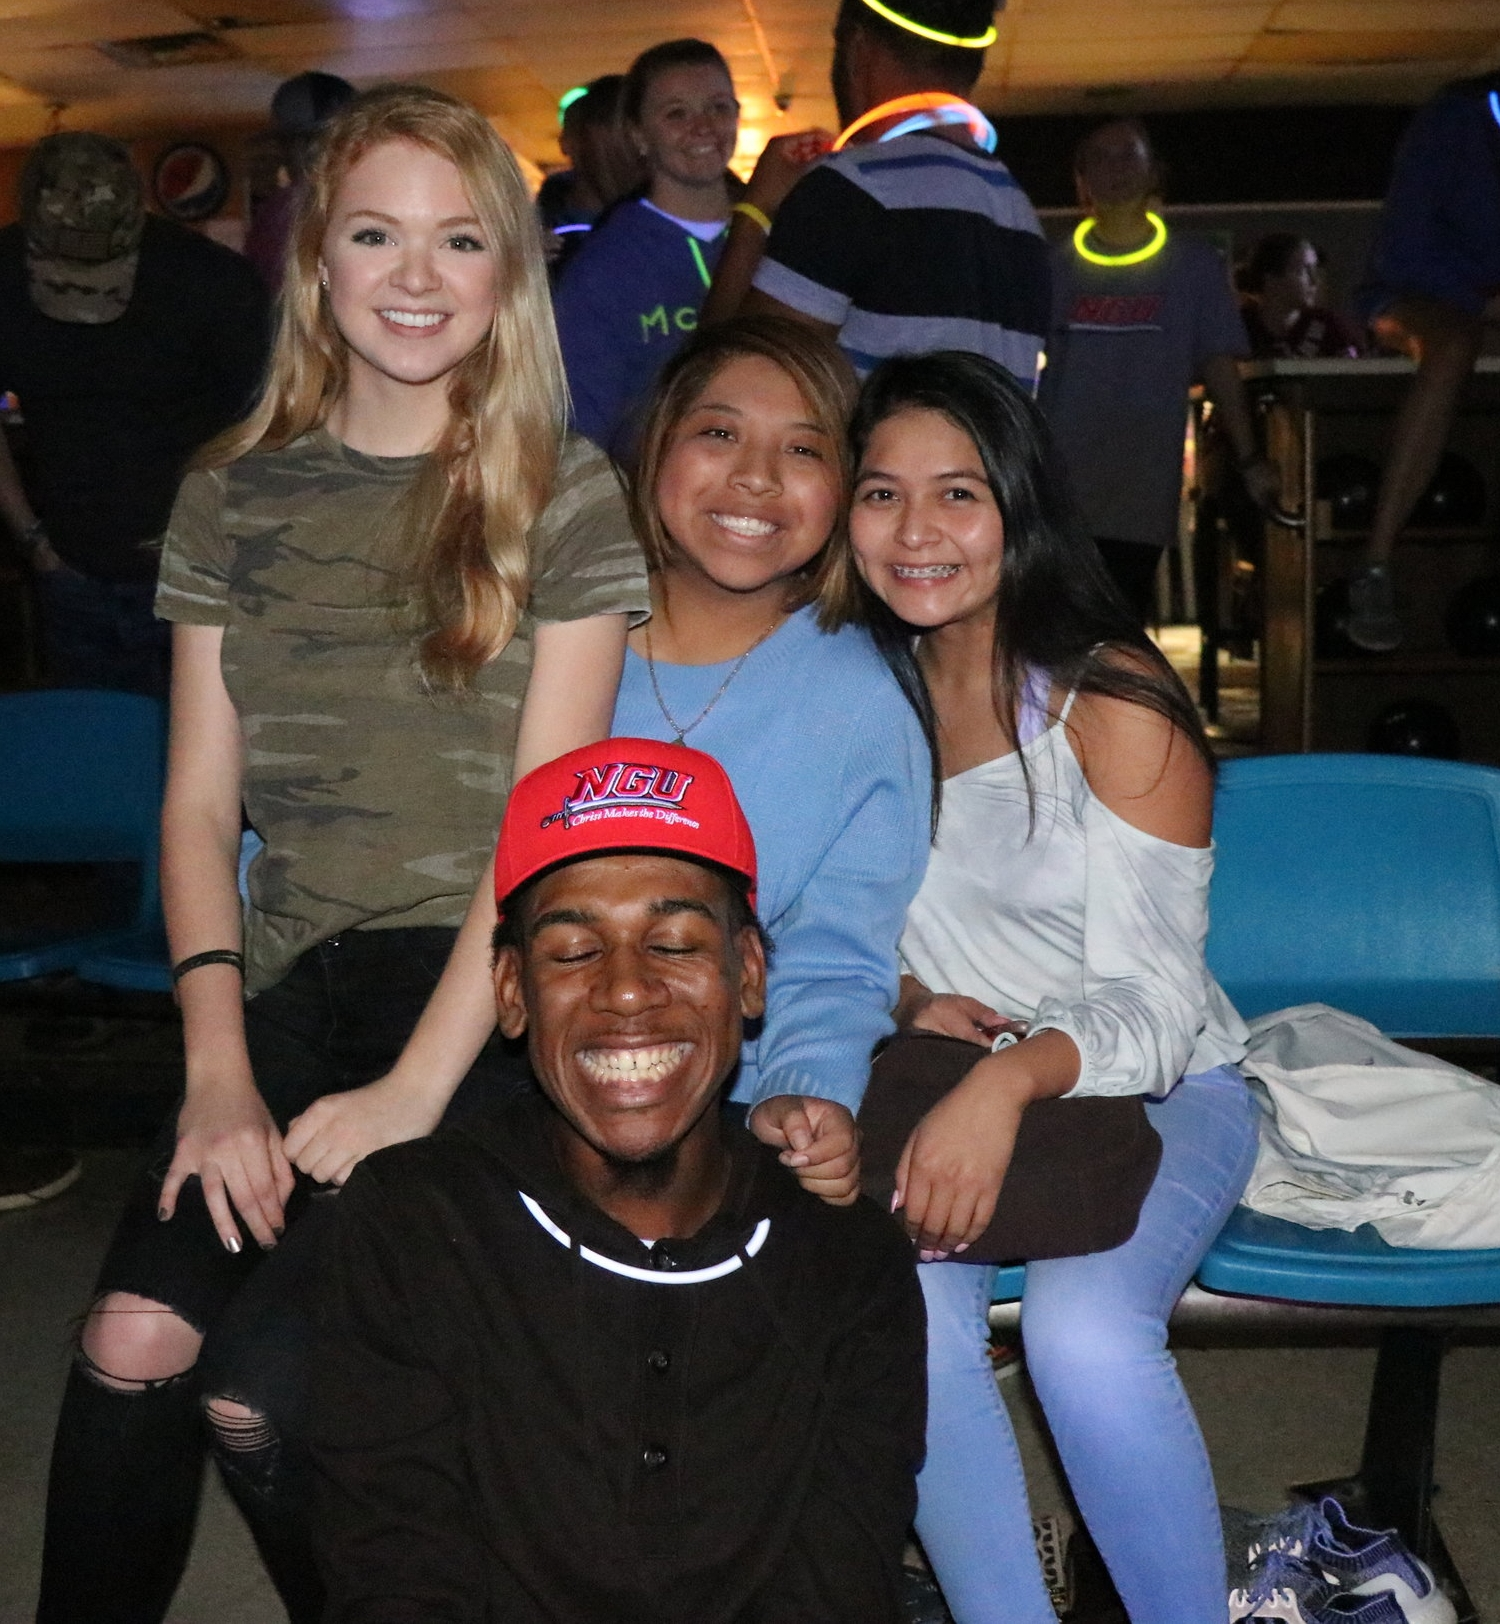 Sophomore, Taylor Loughry, freshman, Tabita Romero, and sophomores Mary Garcia and Zion Dendy all take a break from having fun to pose for the camera.